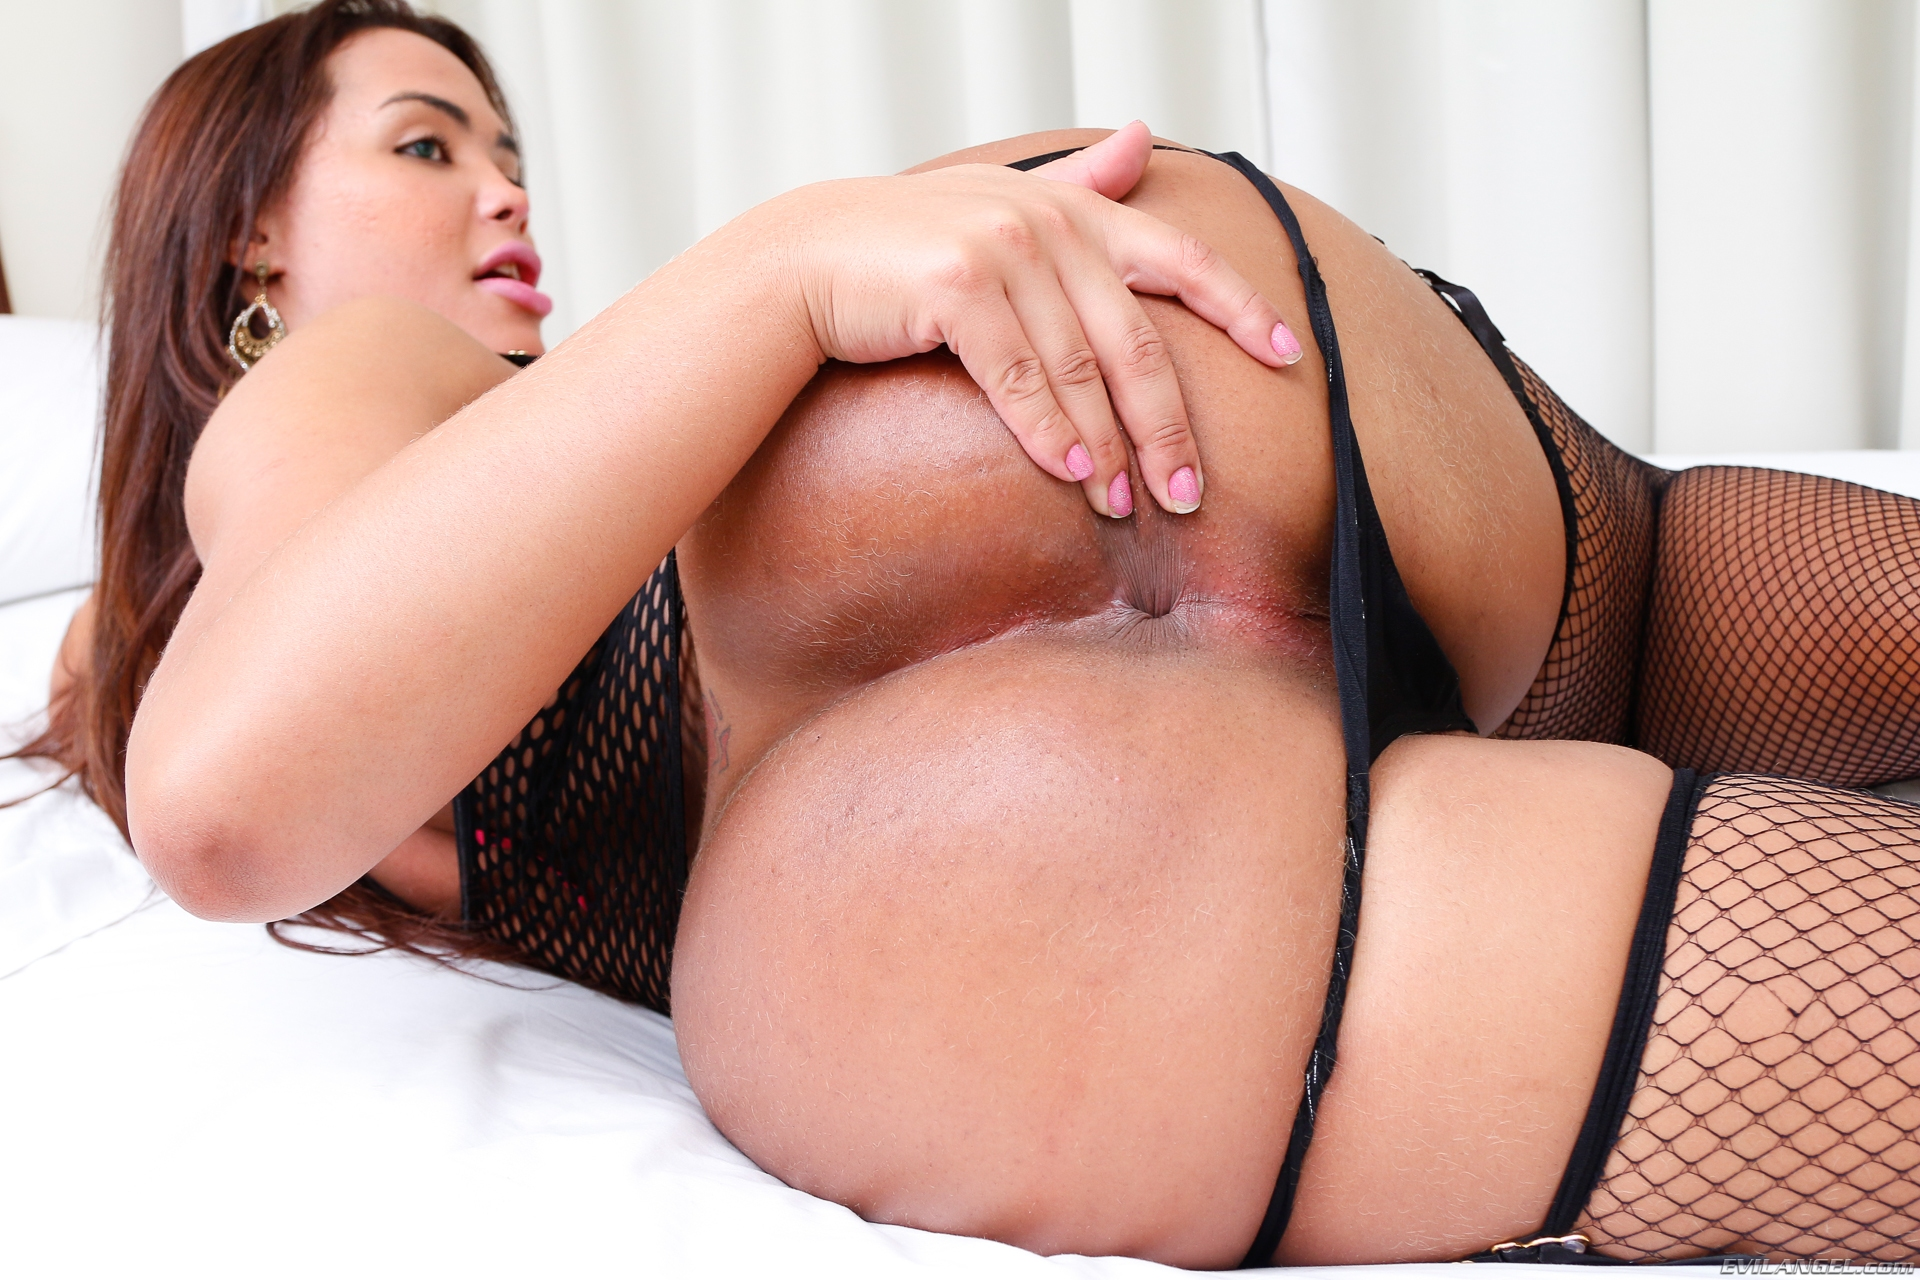 La nena de papi big butt 022916